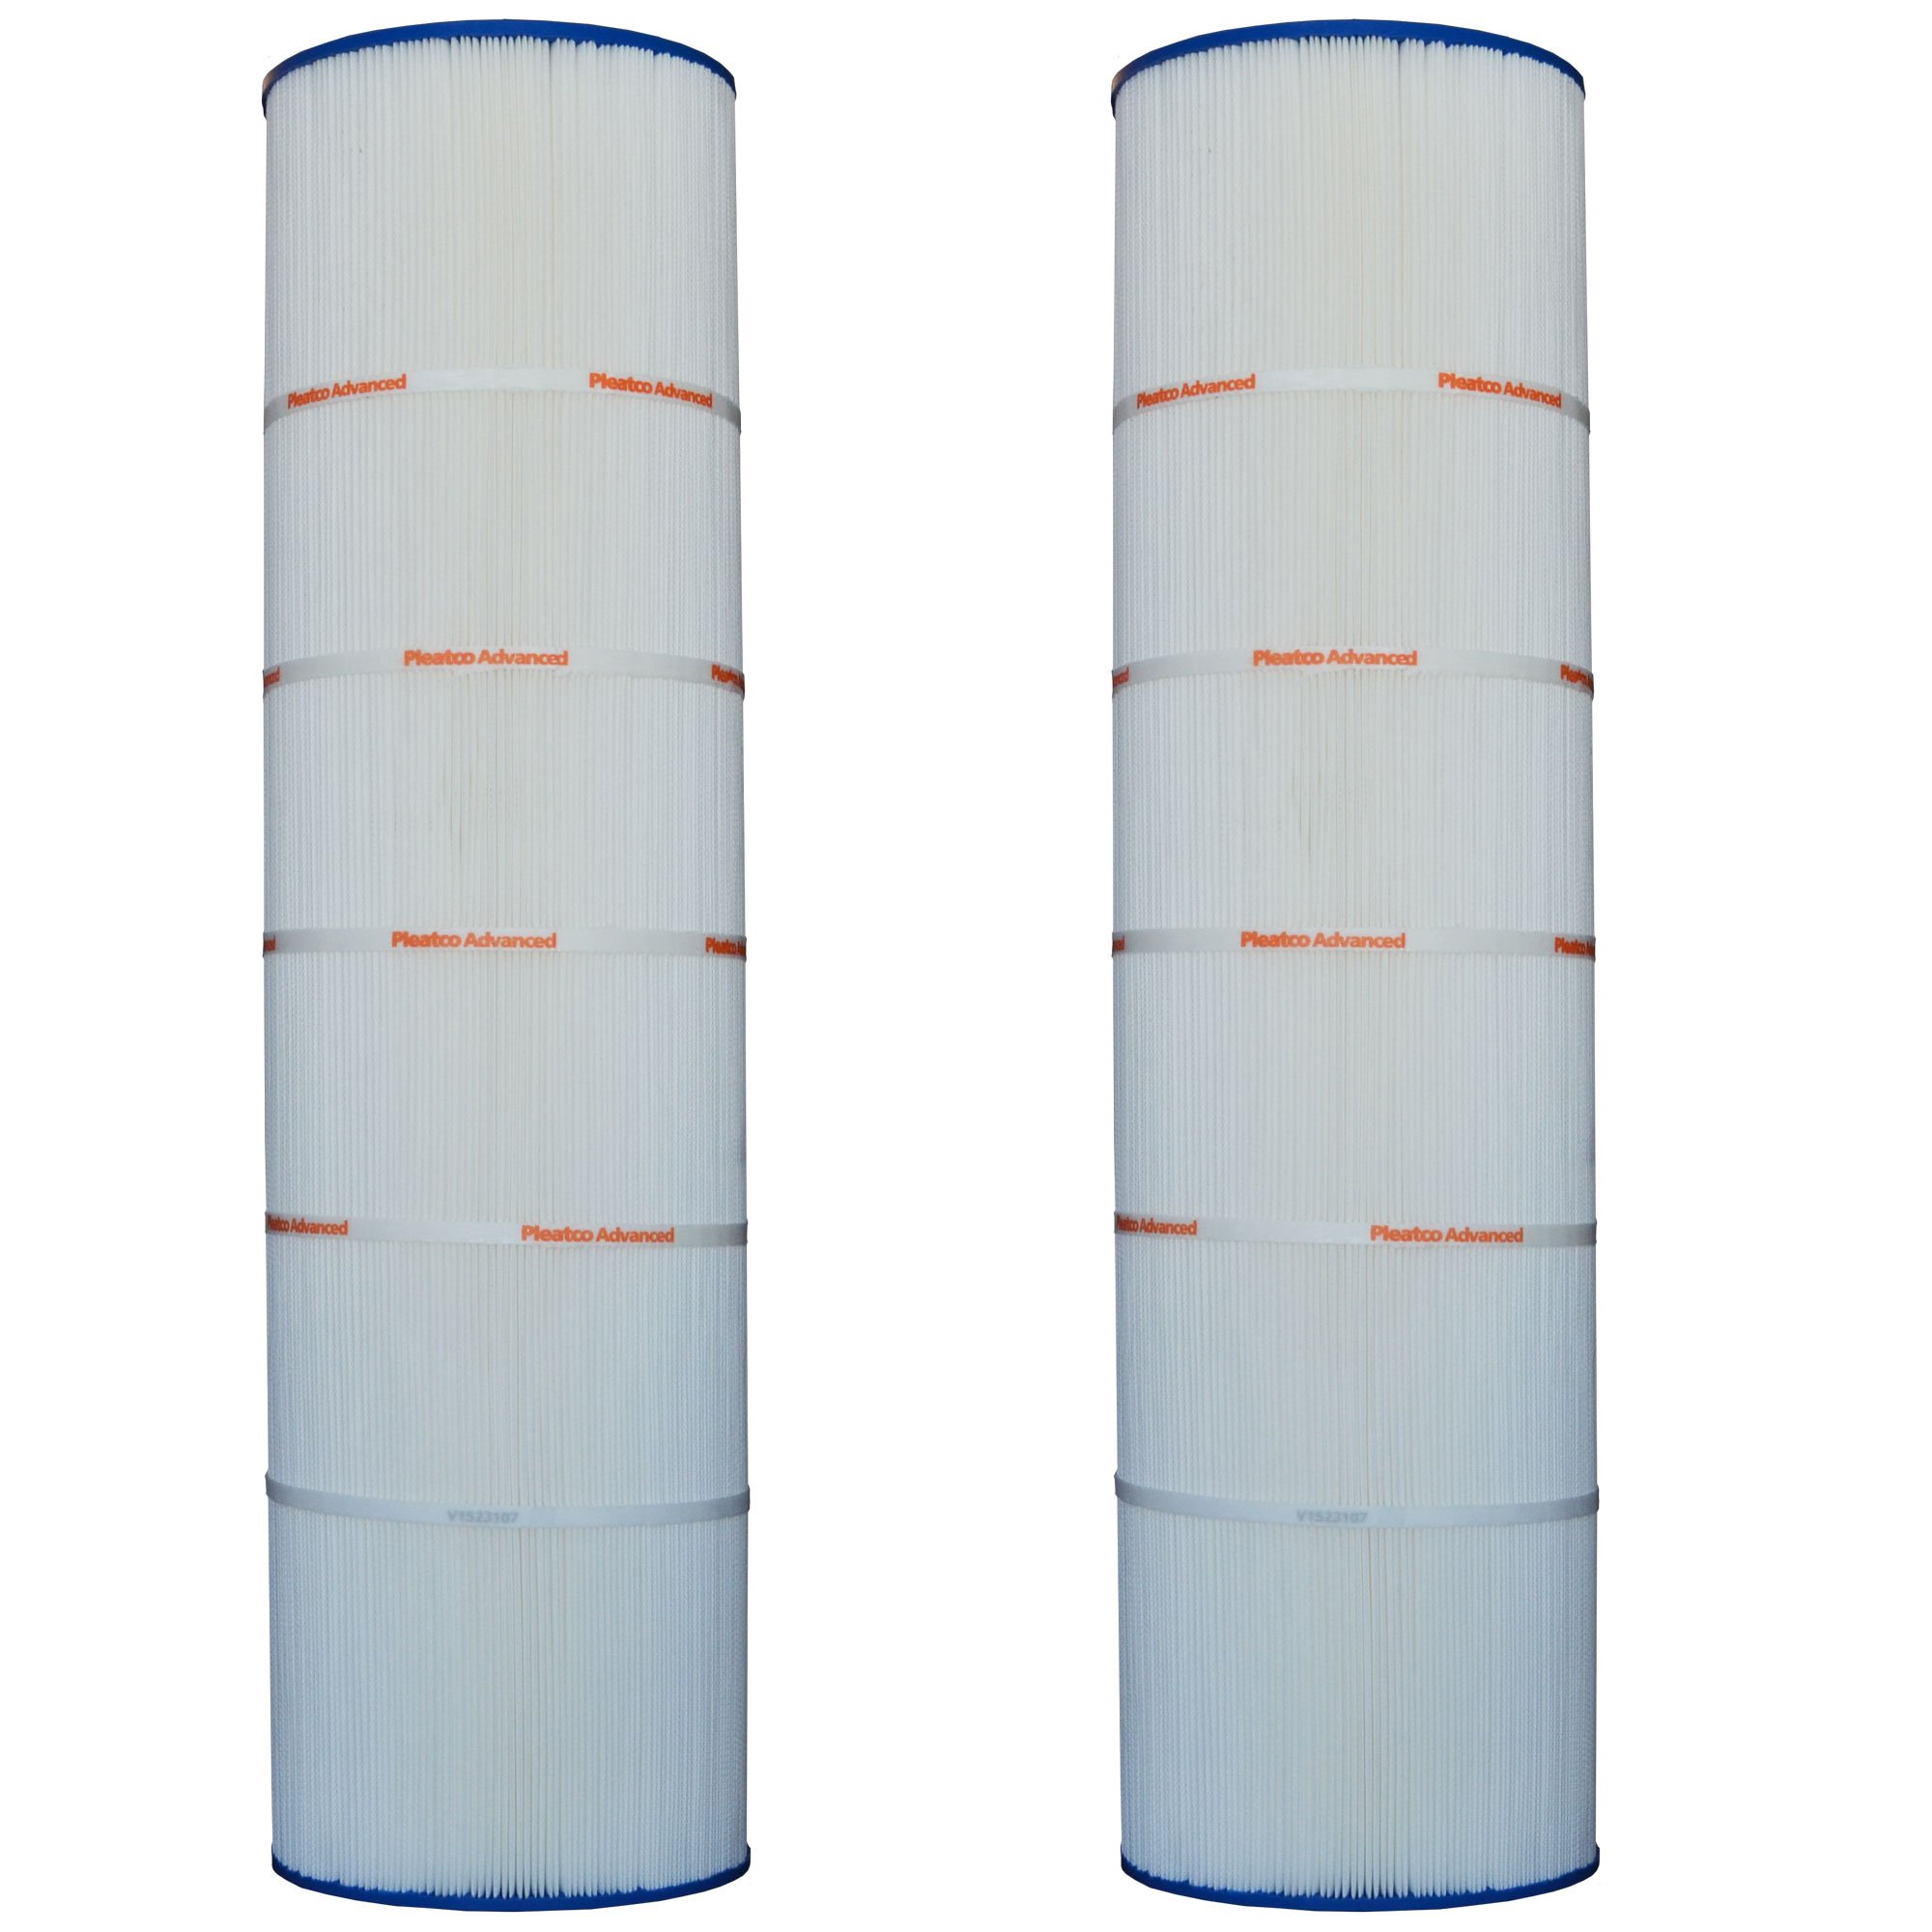 Pleatco PJANCS200 200 SqFt Jandy Industries CS200 Pool Filter Cartridge (2 Pack)